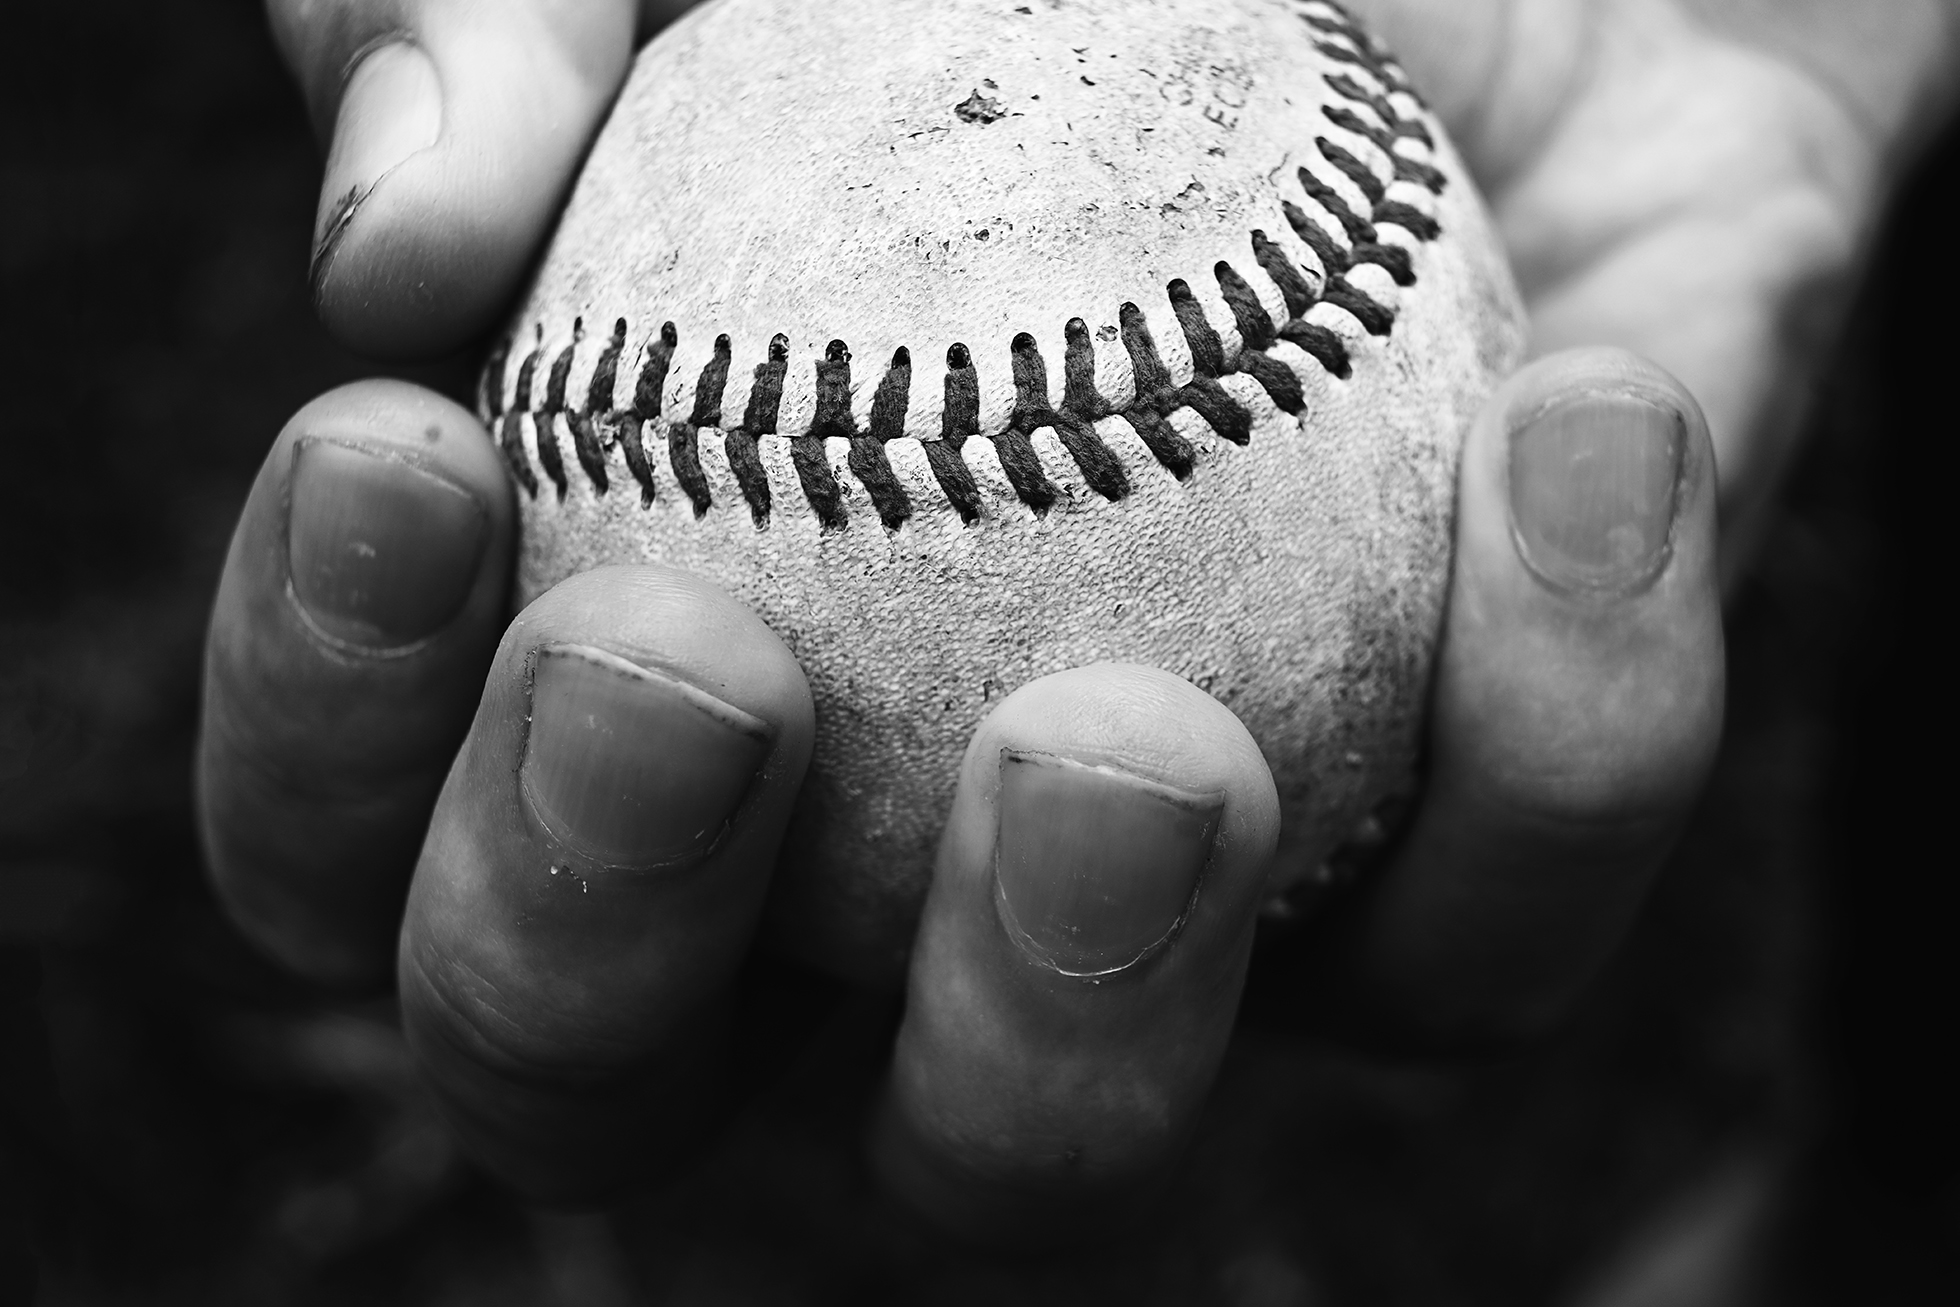 photographing kids sports black and white photo of hand holding baseball details by kellie bieser